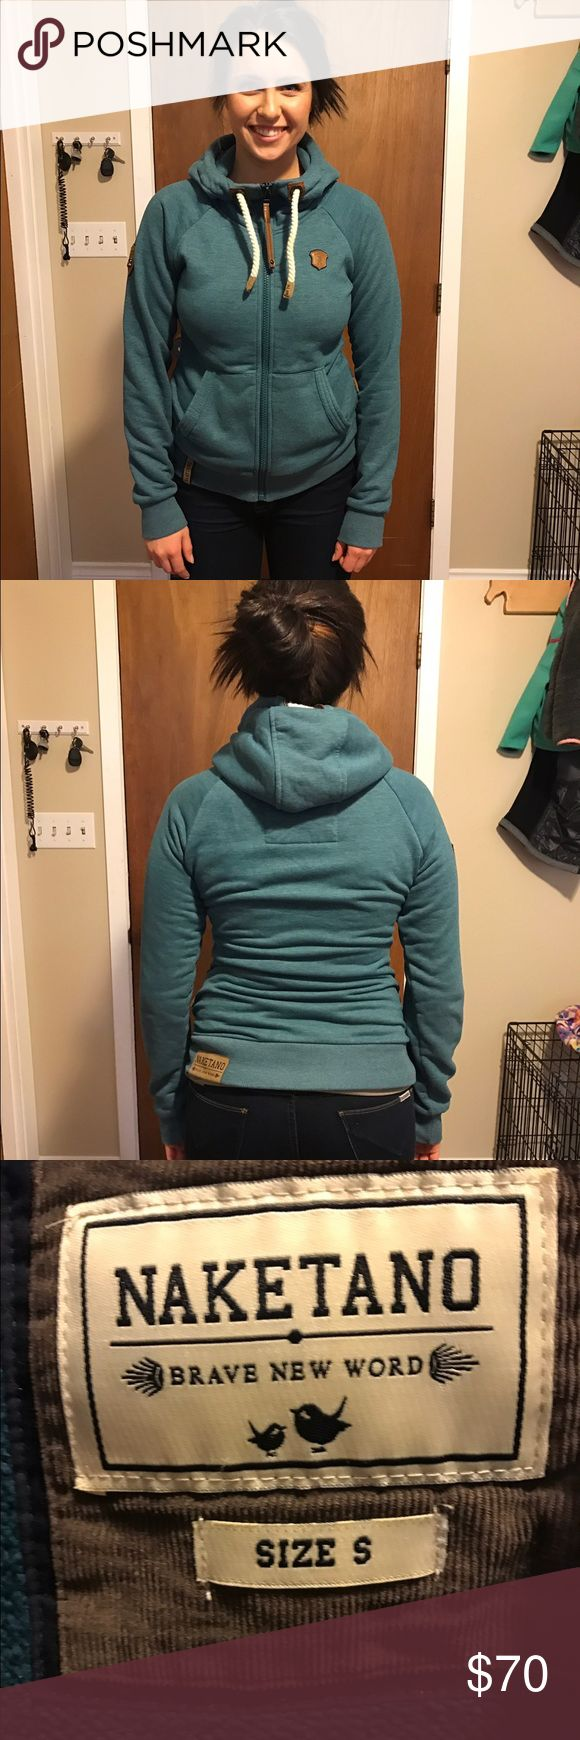 Best 25+ Hoodies for sale ideas only on Pinterest   M4 for sale ...